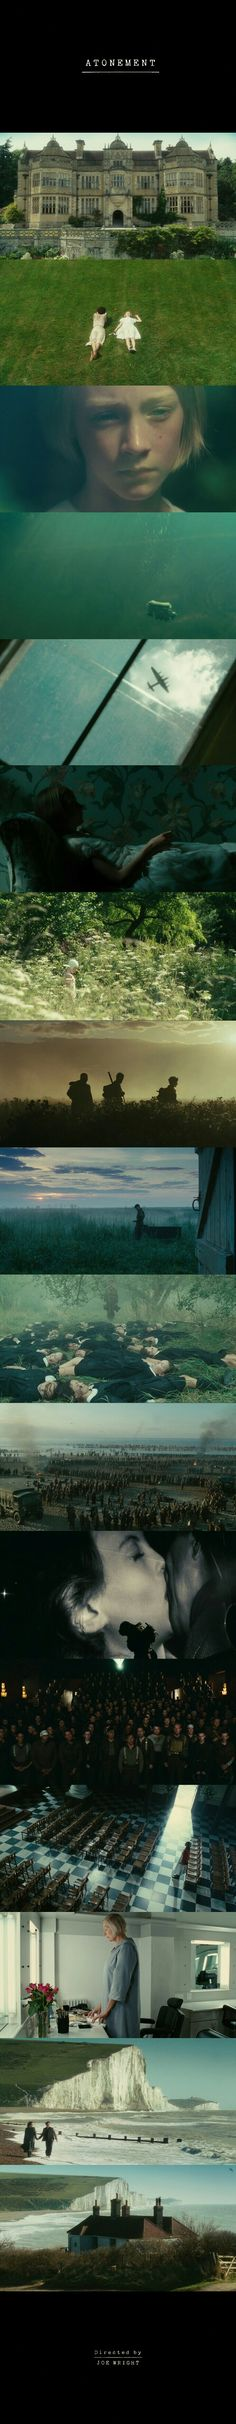 Atonement (2007) Directed by Joe Wright. Cinematography by Seamus McGarvey.